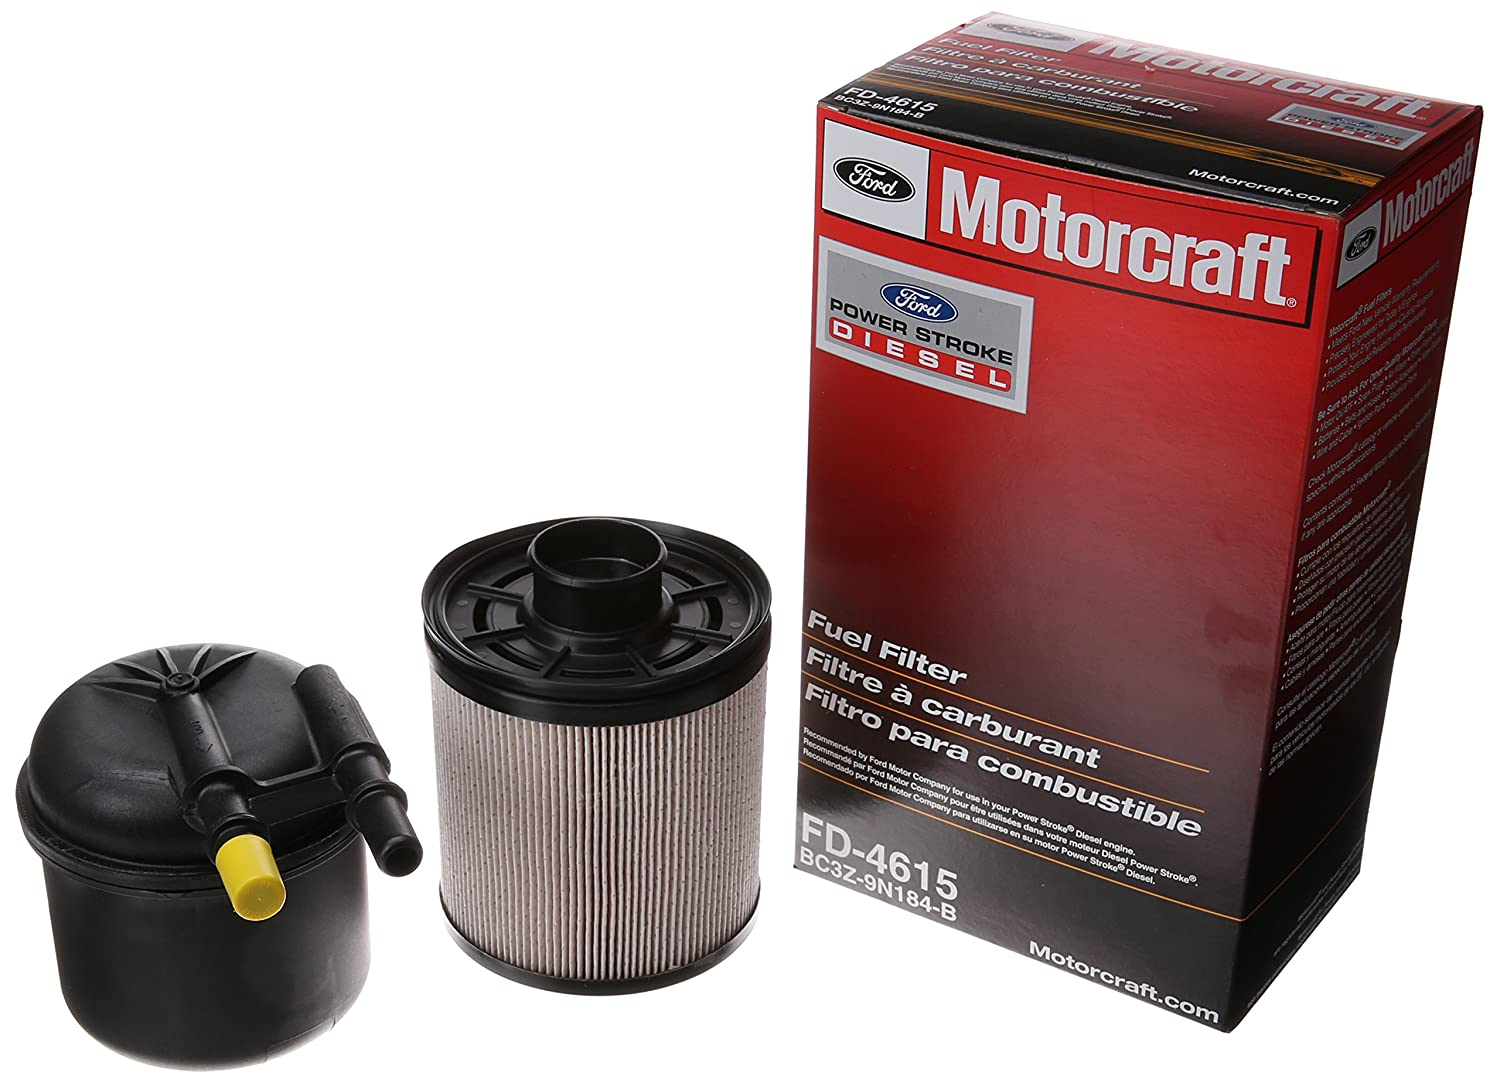 Fuel Filters Replacement Parts Automotive 1994 Mustang Gt Filter Motorcraft Fd 4615